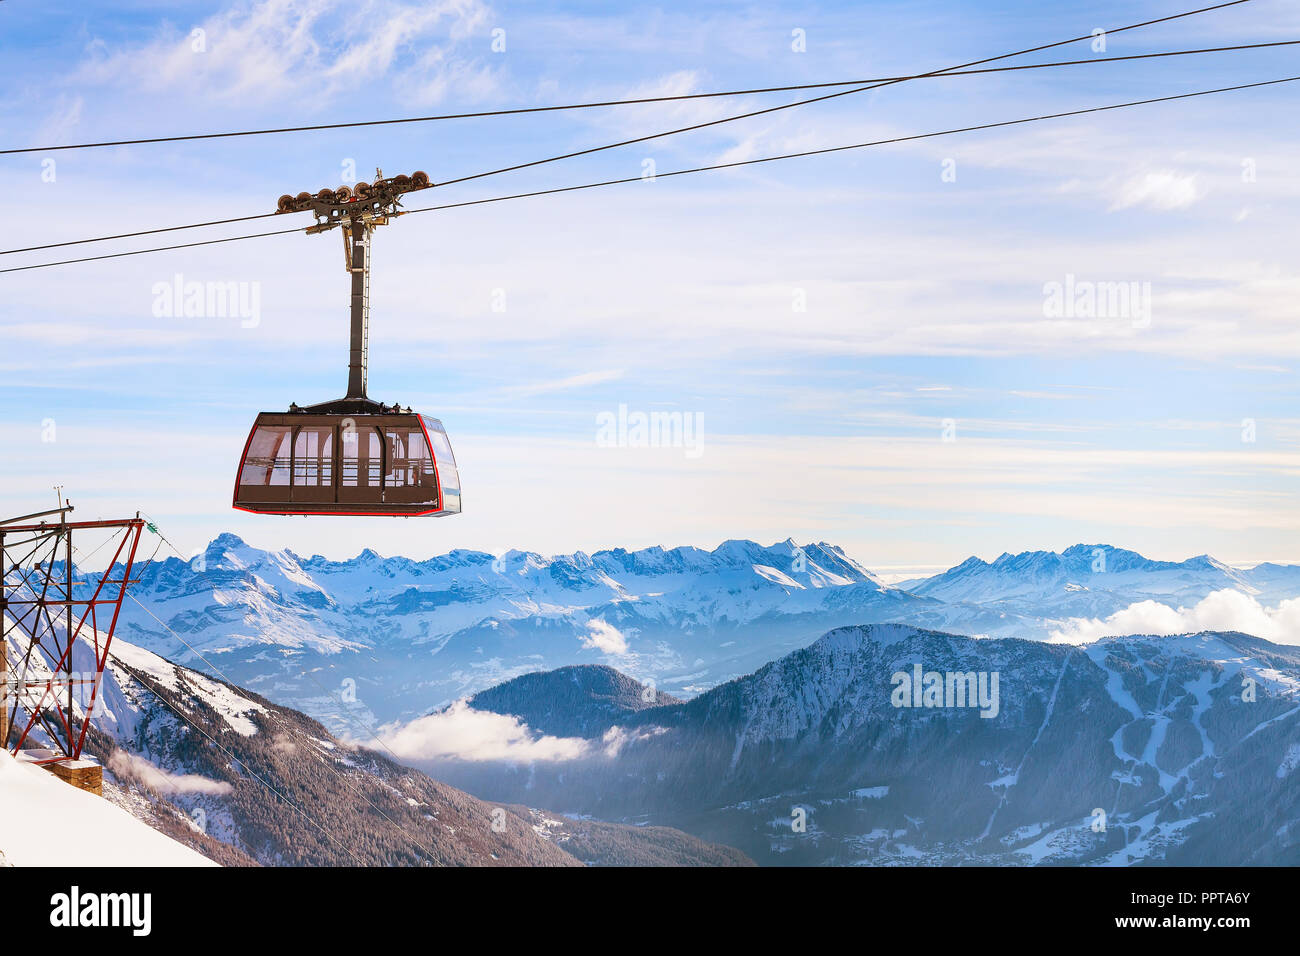 Cable Car and snow mountains panorama of French Alps near Chamonix, France. - Stock Image